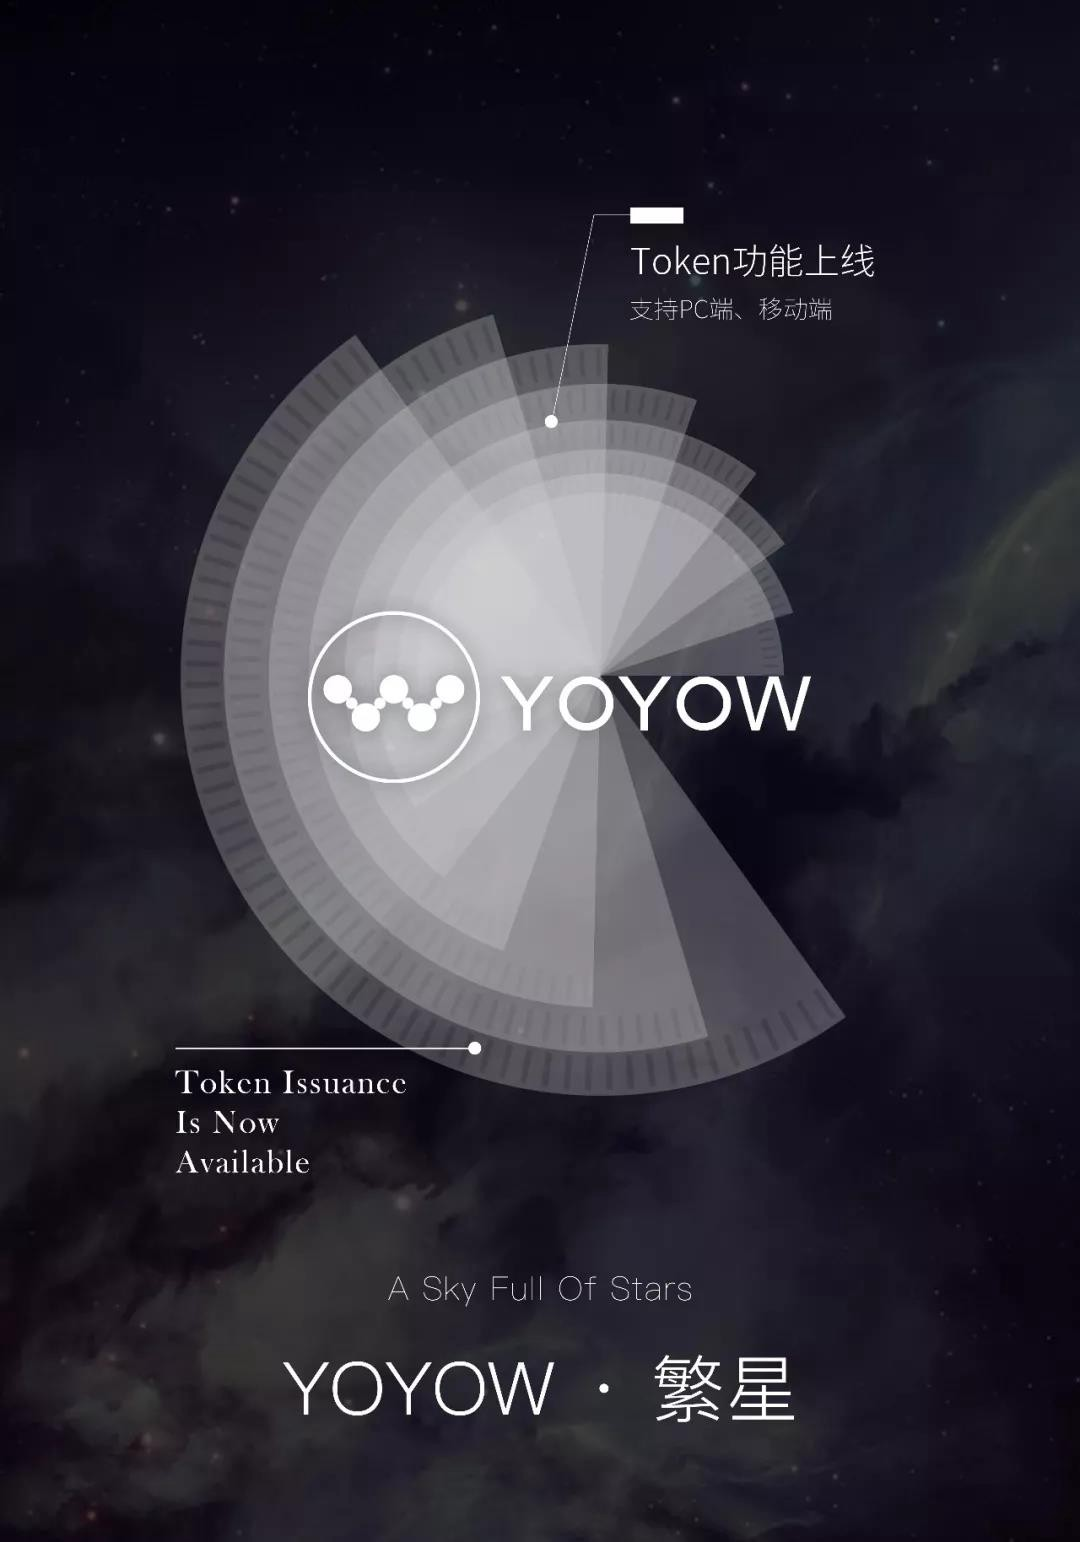 YOYOW latest version 'Fan Xing' was released with token